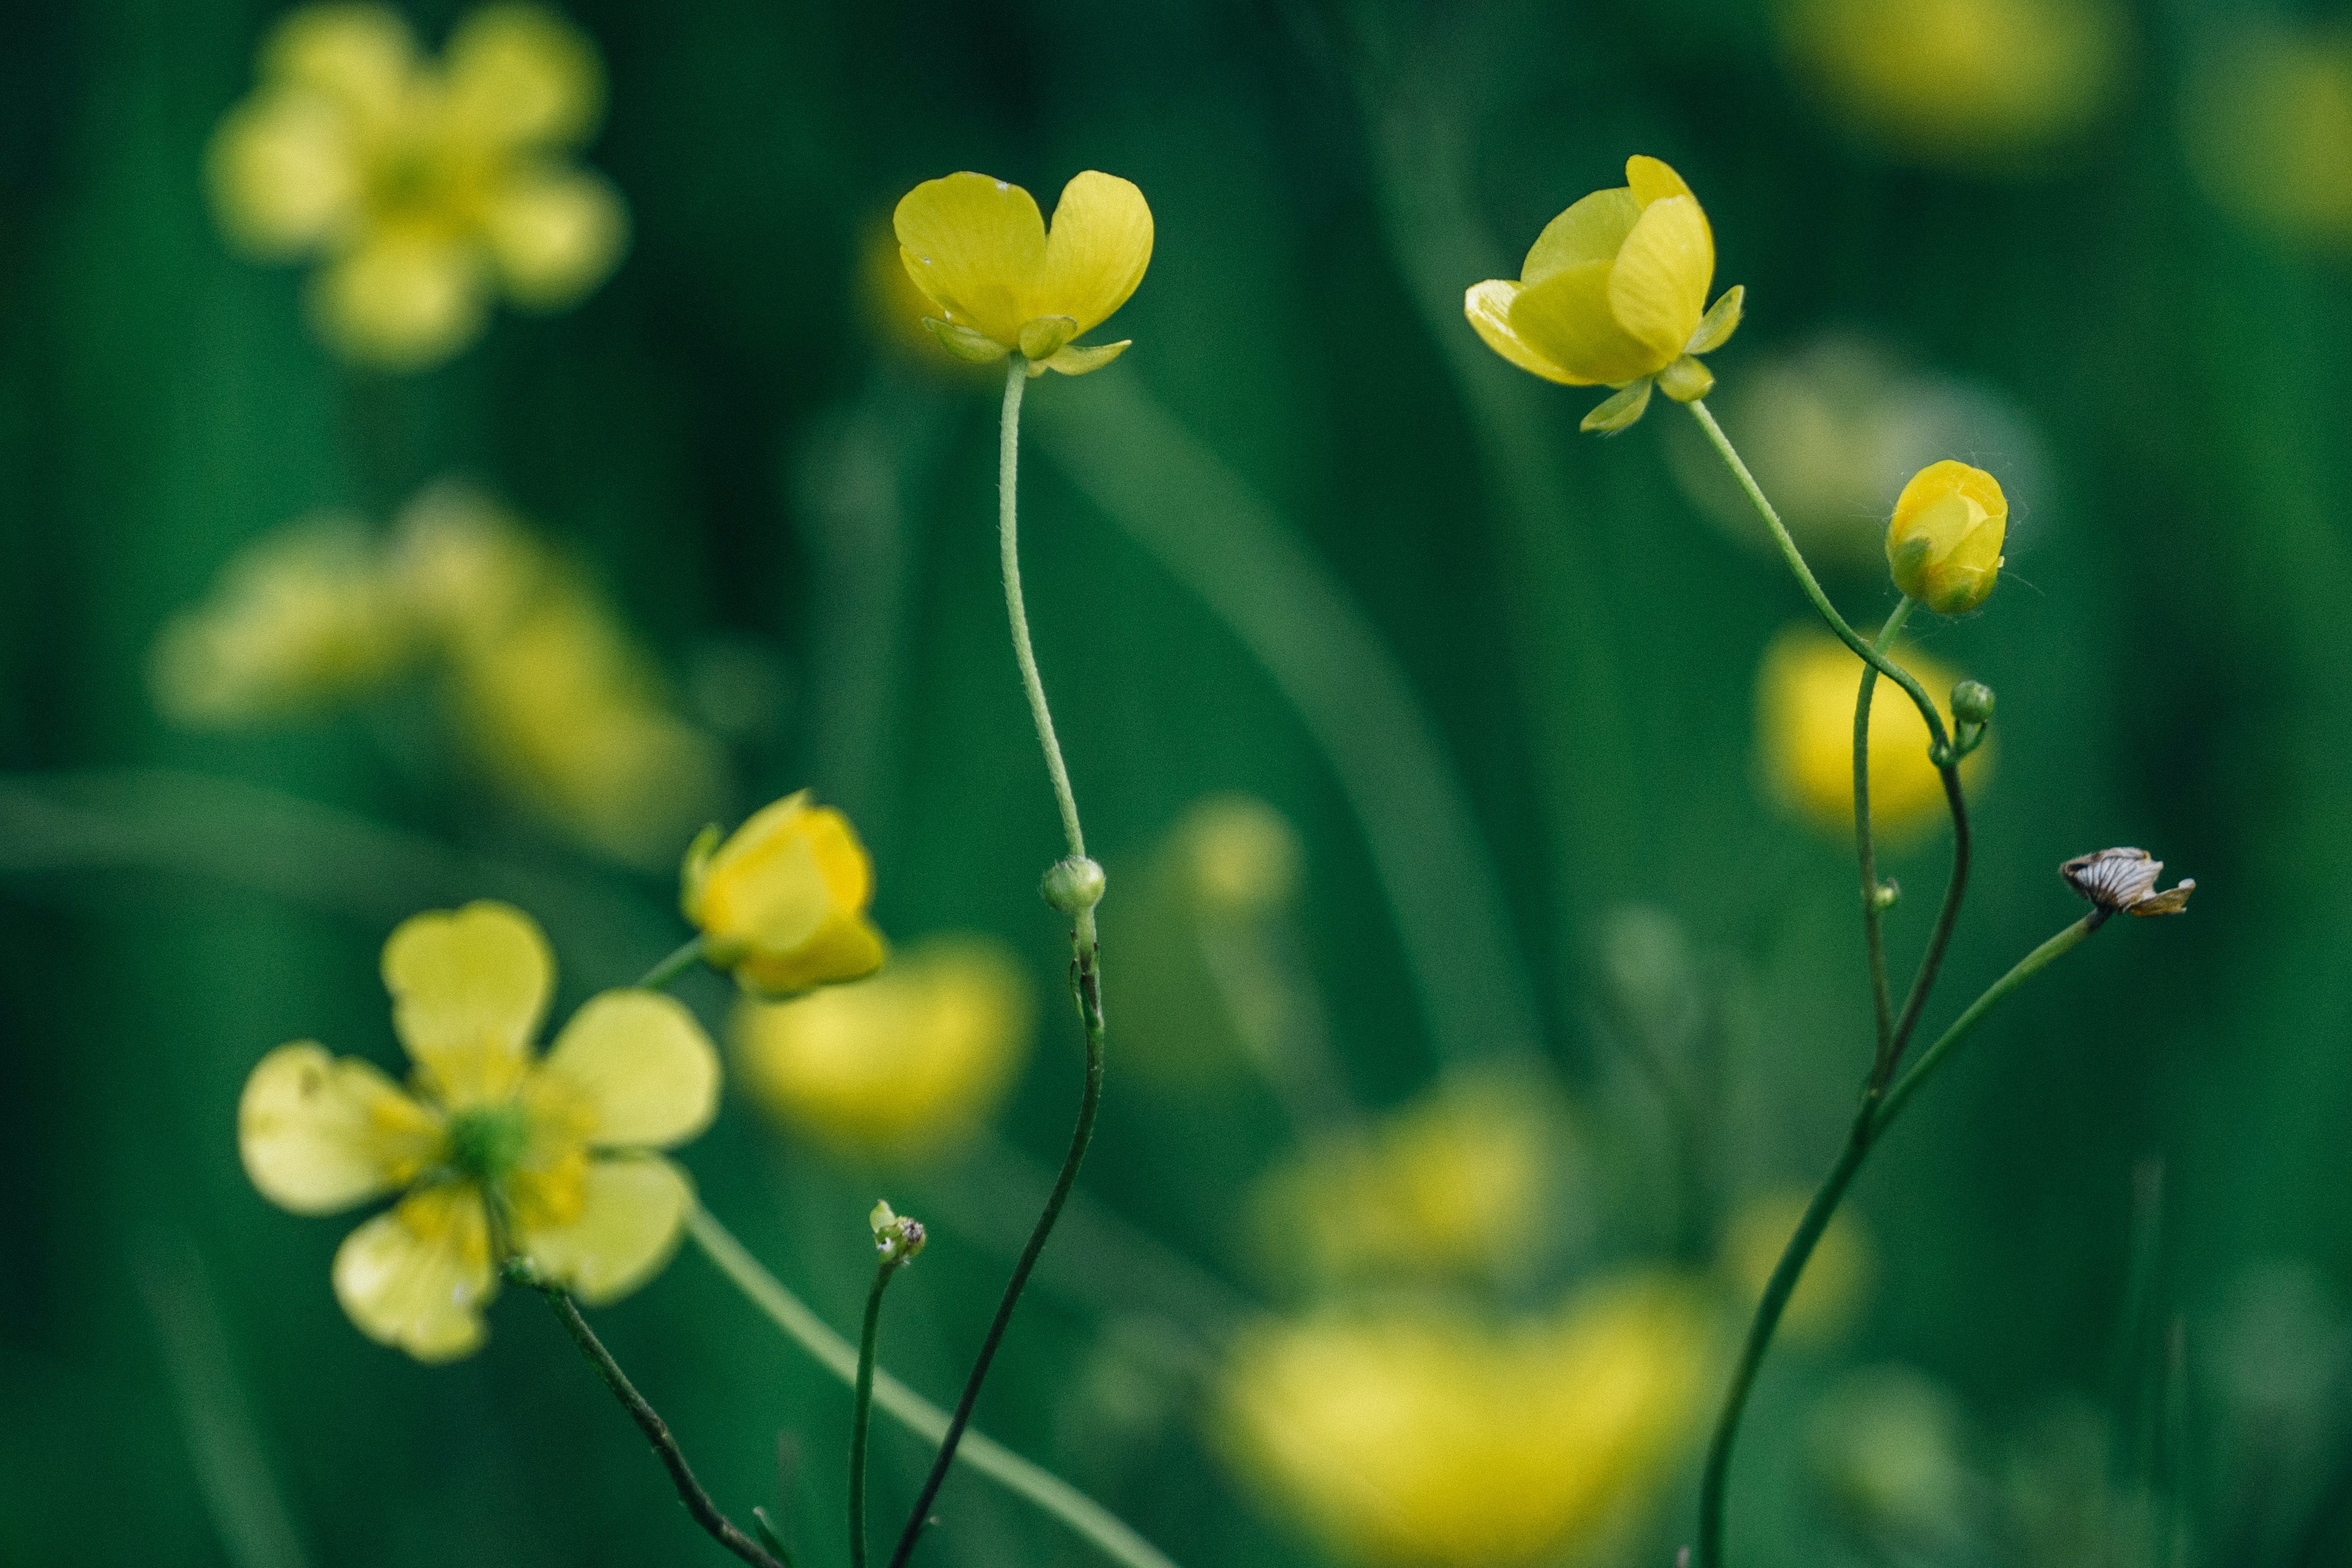 closeup photo of yellow petaled flowers